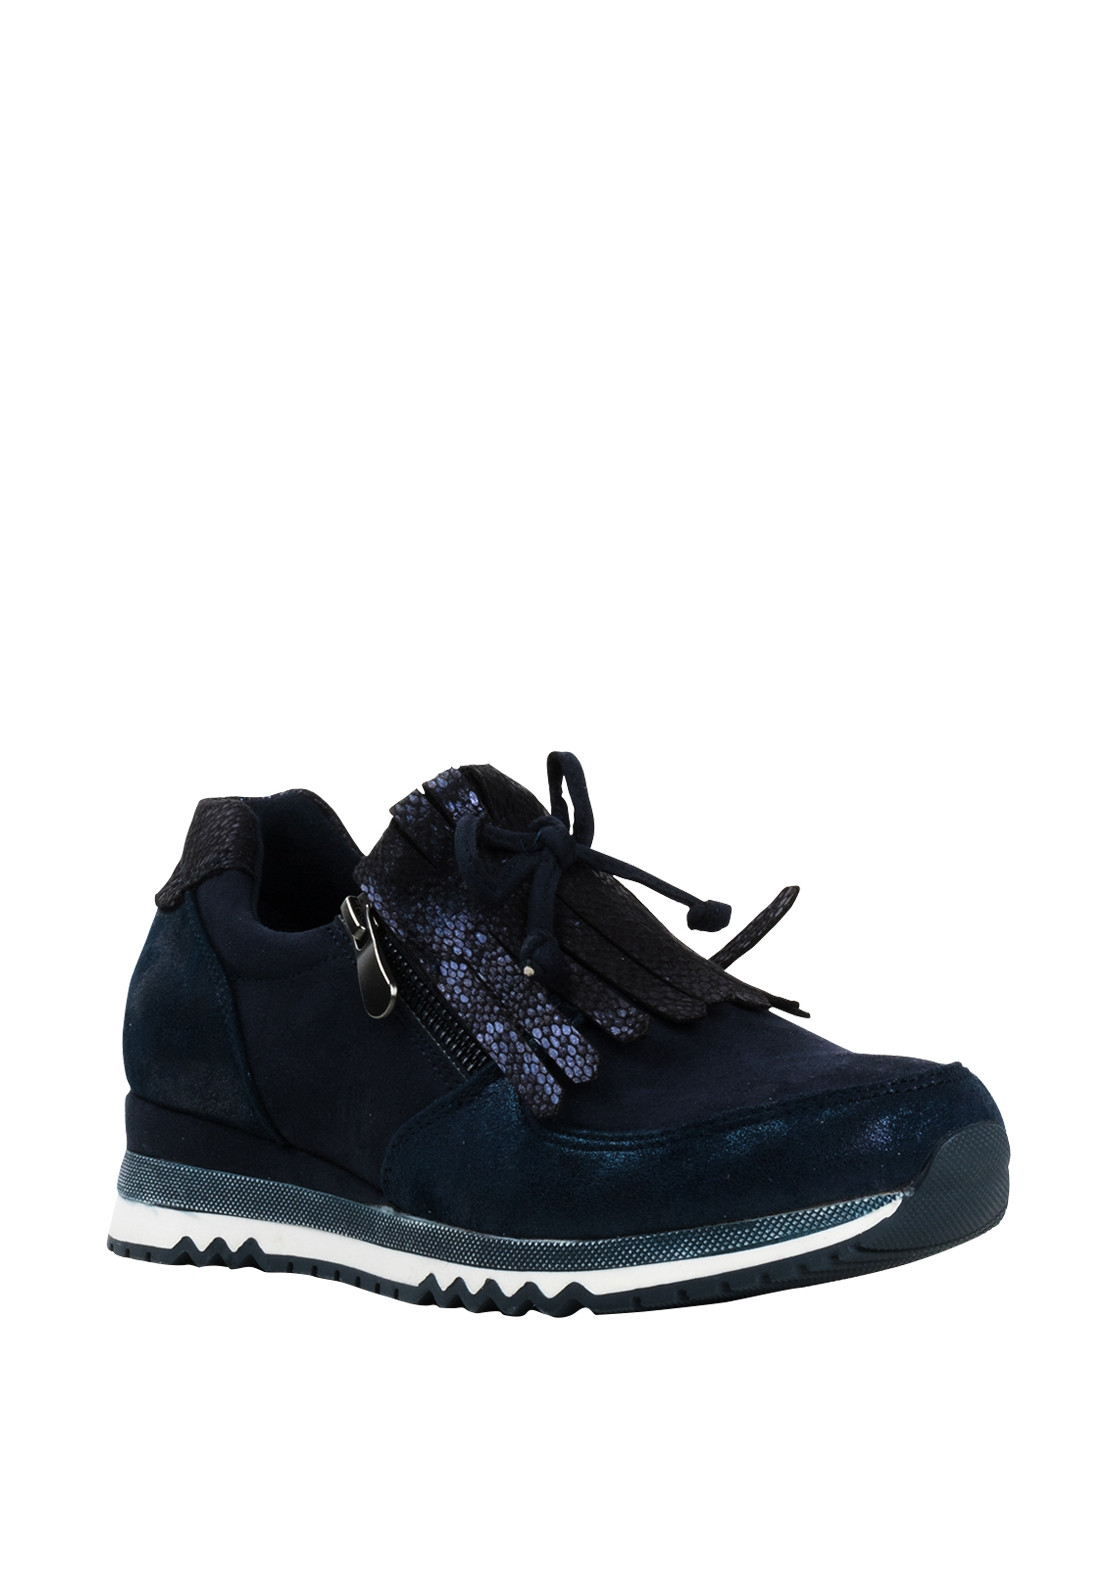 Marco Tozzi Womens Wedge Trainers, Navy